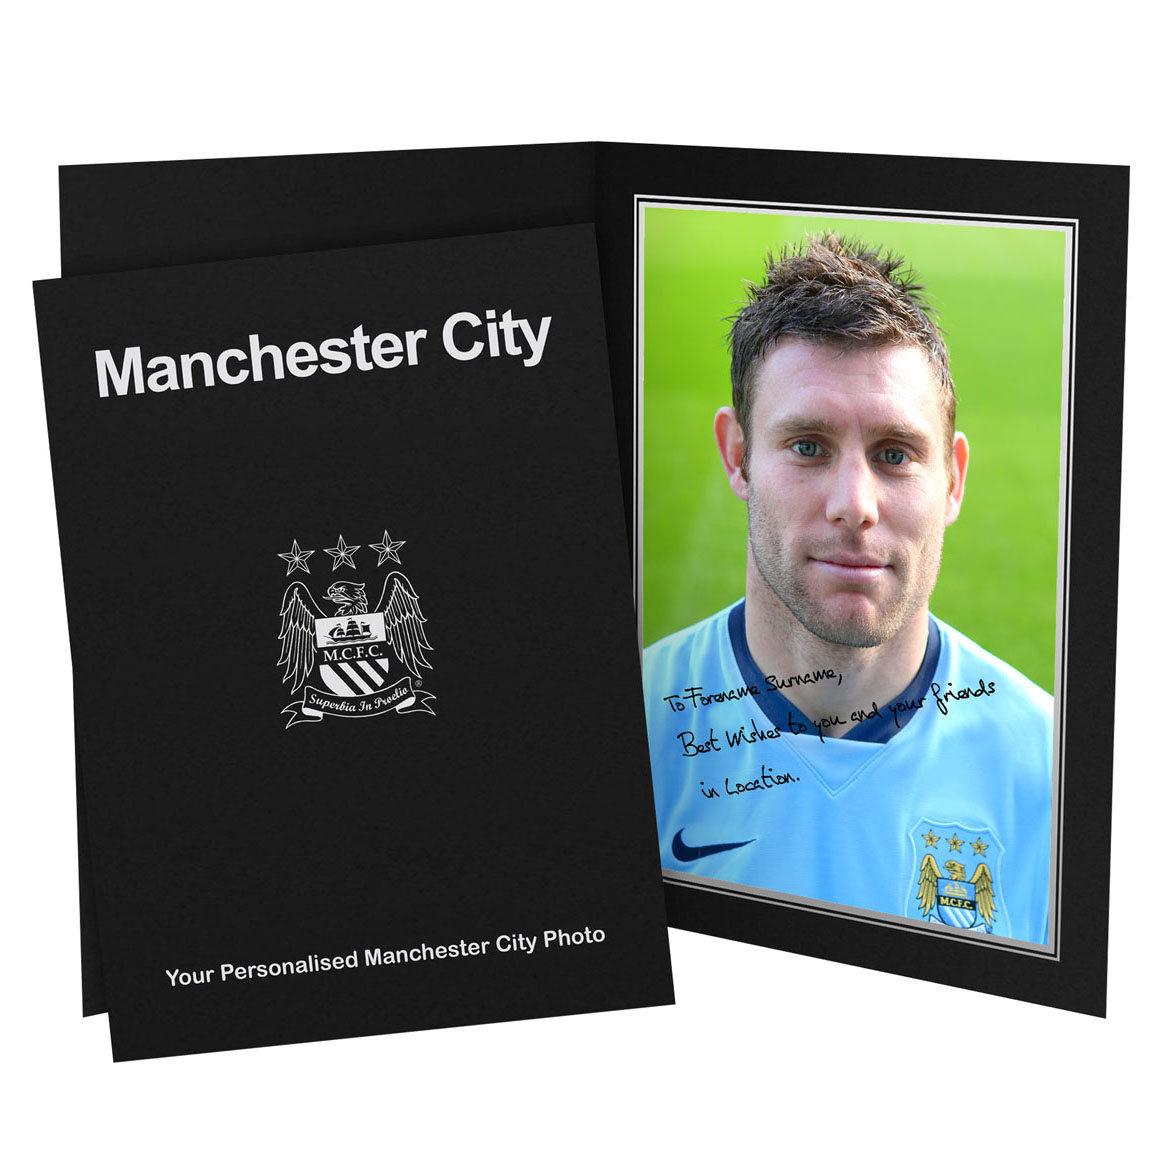 Manchester City Personalised Signature Photo in Presentation Folder - James Milner